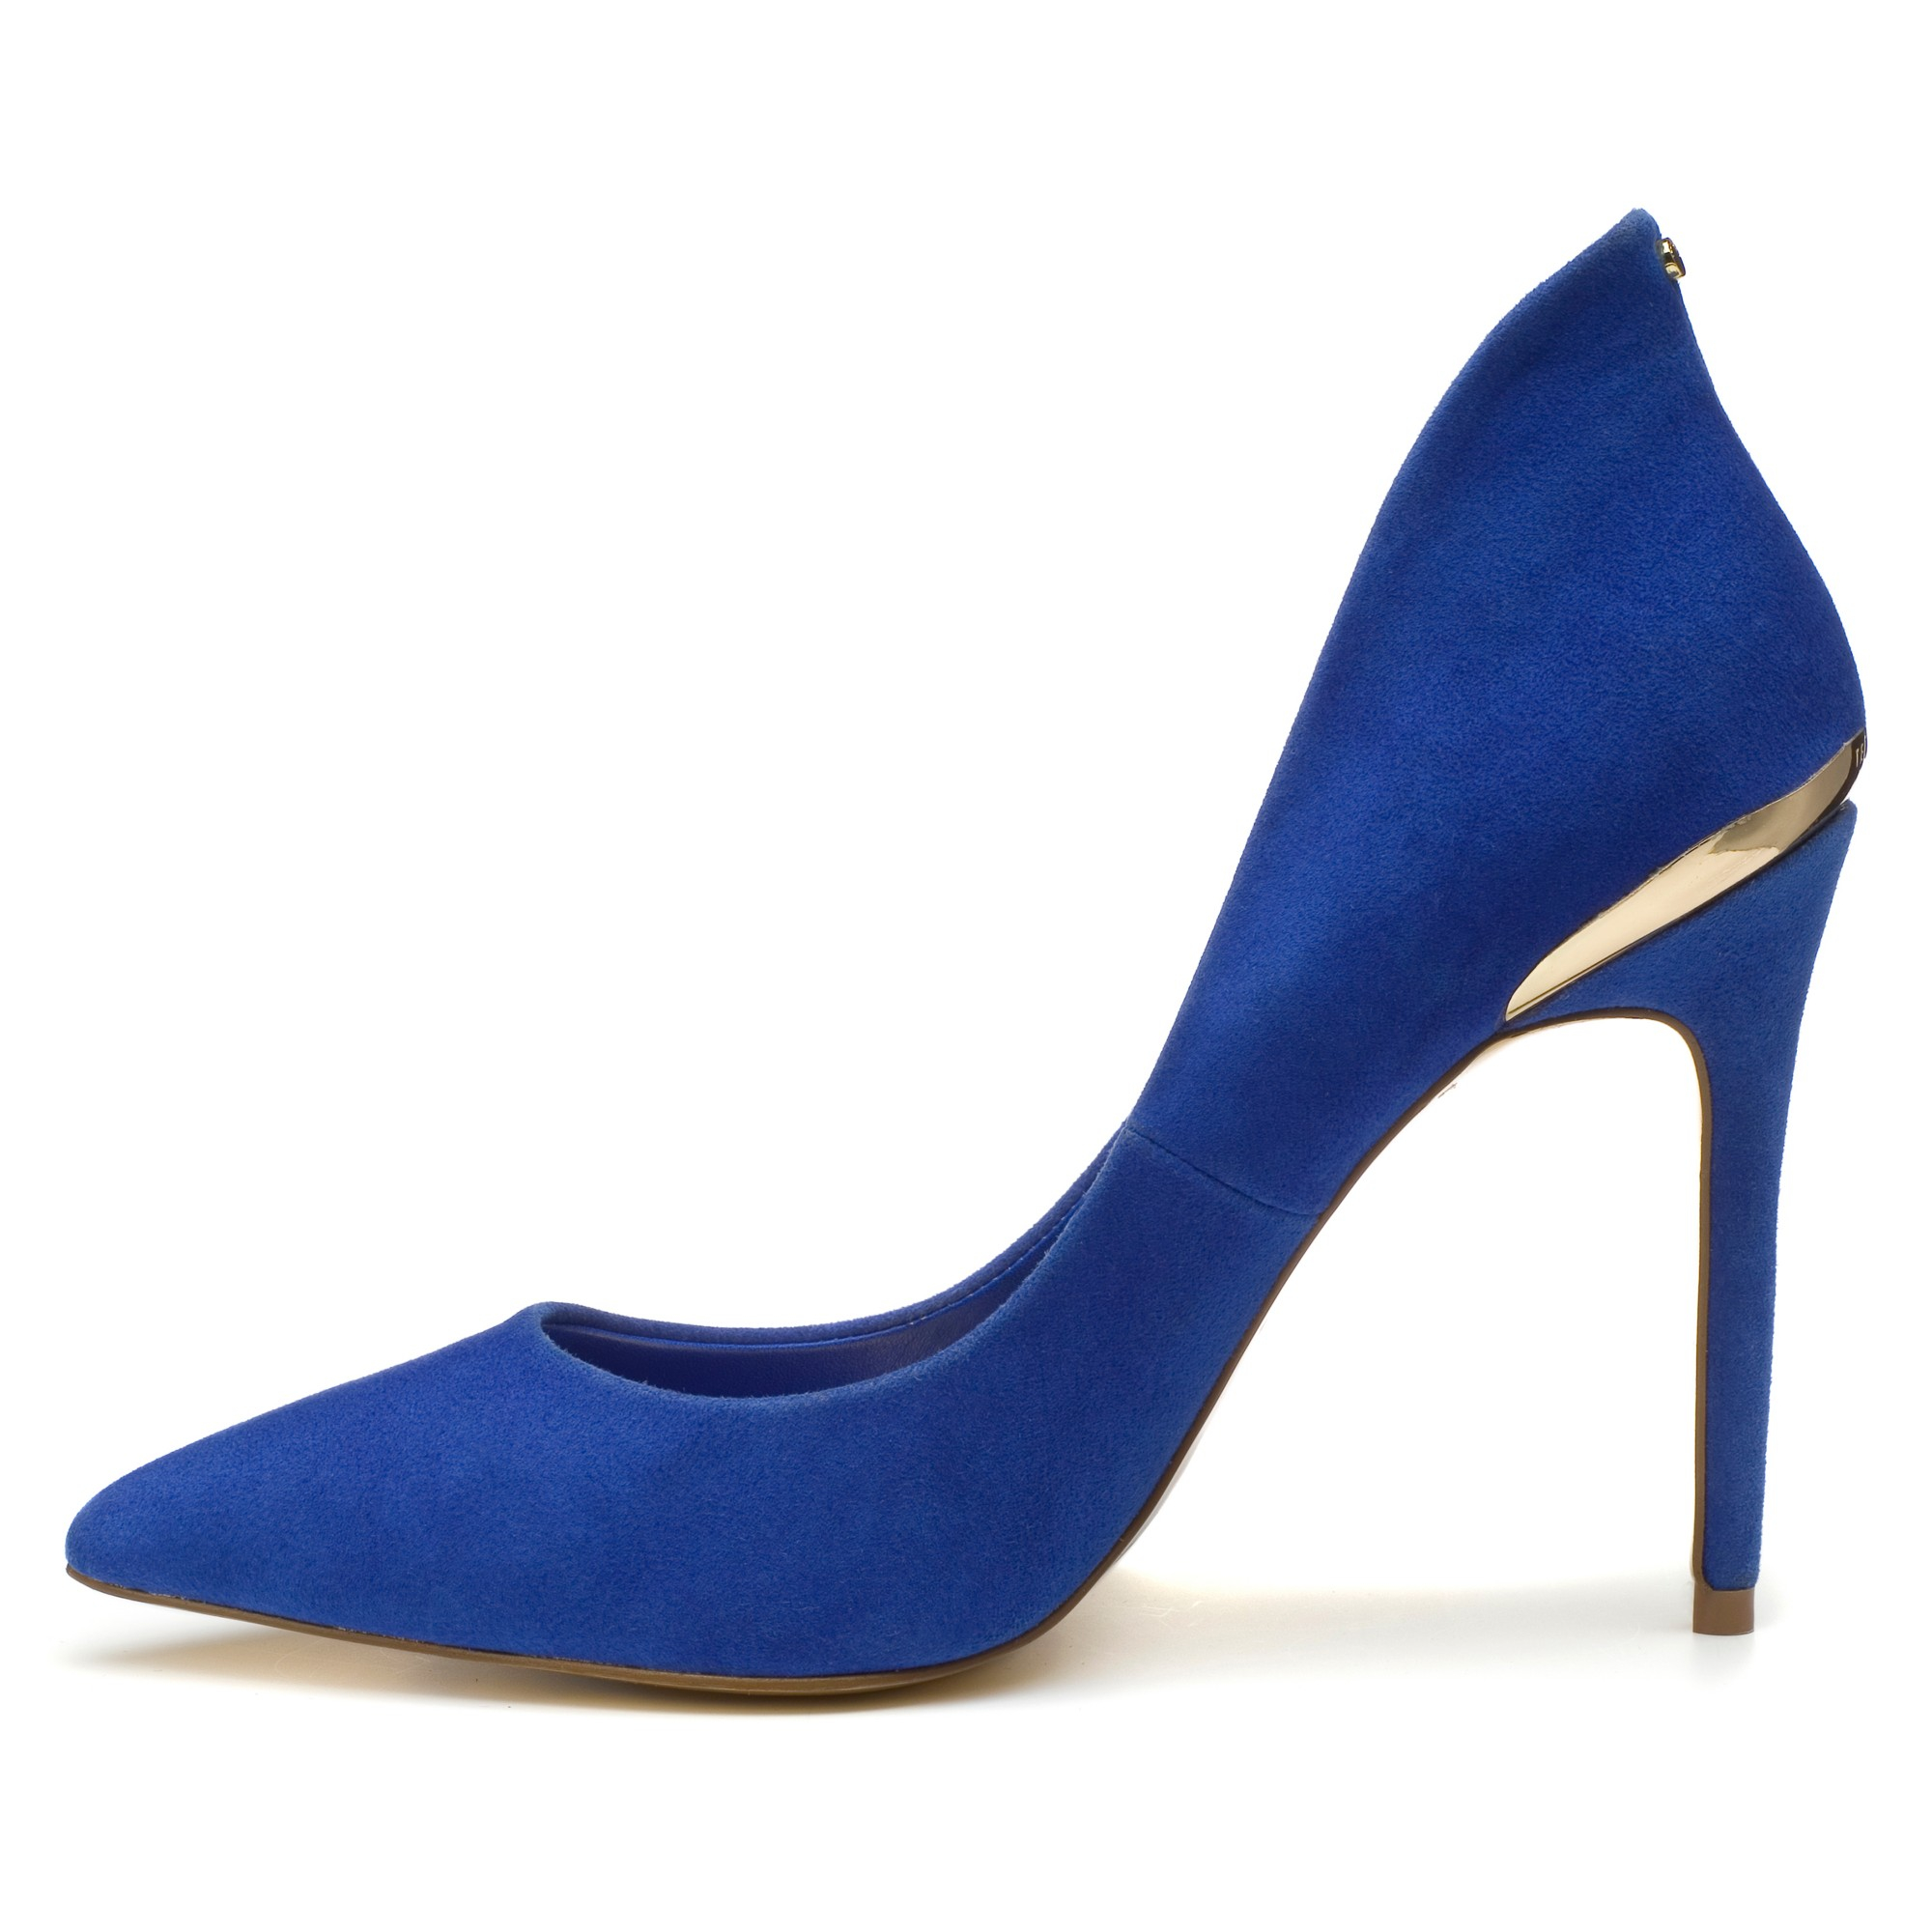 7935e8aa0e18f5 Ted Baker Savenniers Suede High Heeled Court Shoes in Blue - Lyst